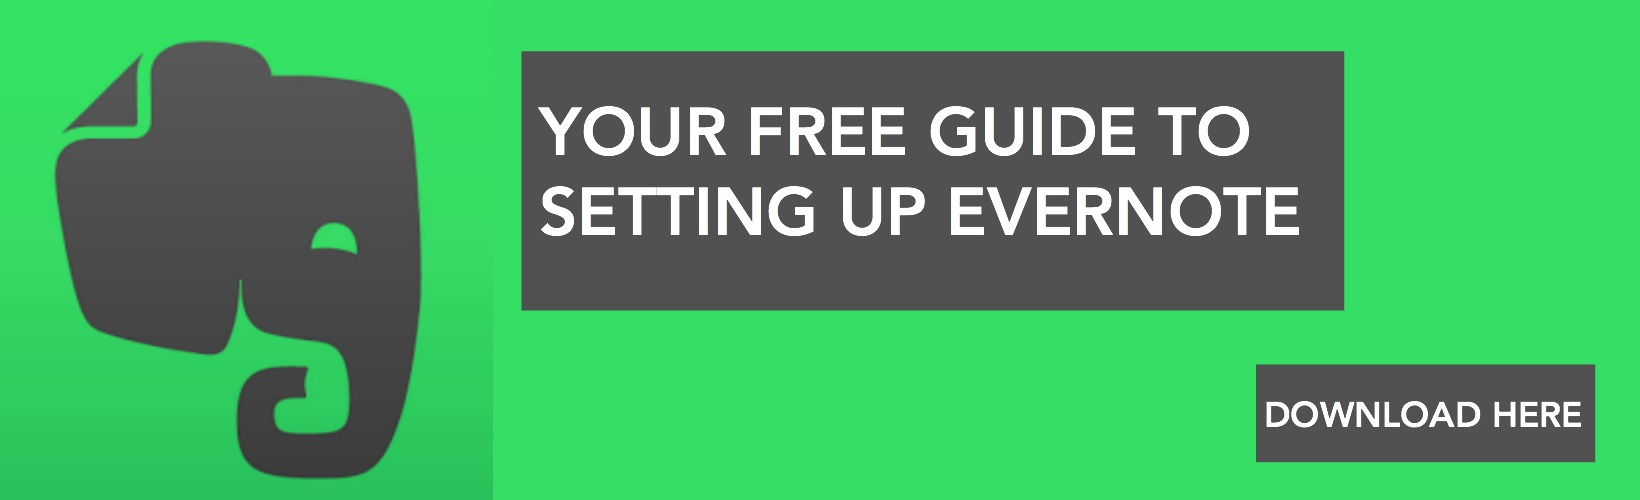 evernote for expats